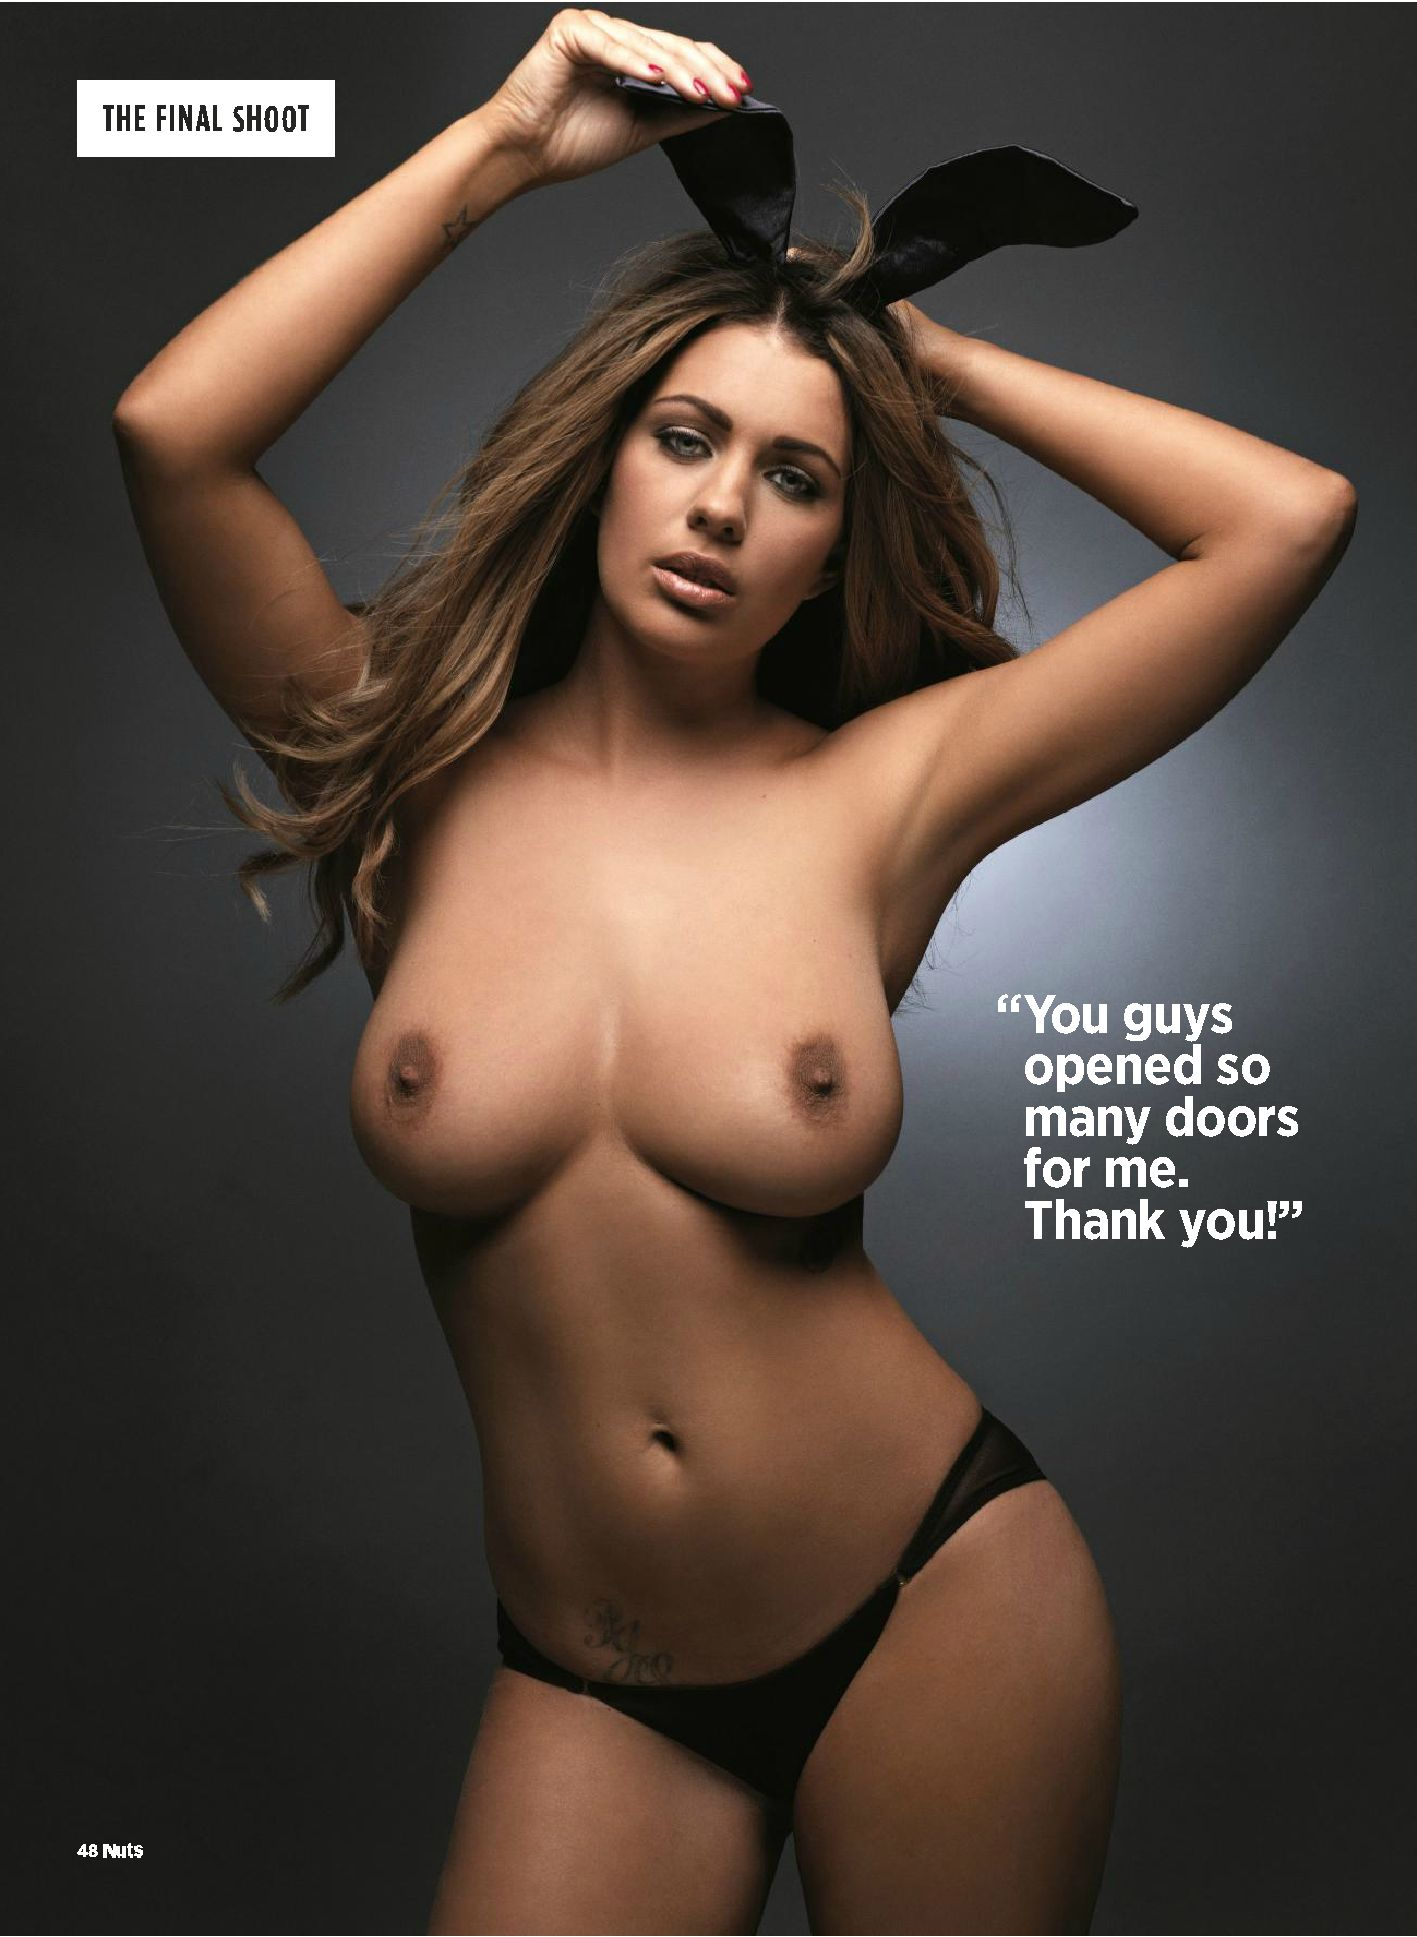 Naked women magazine free have thought